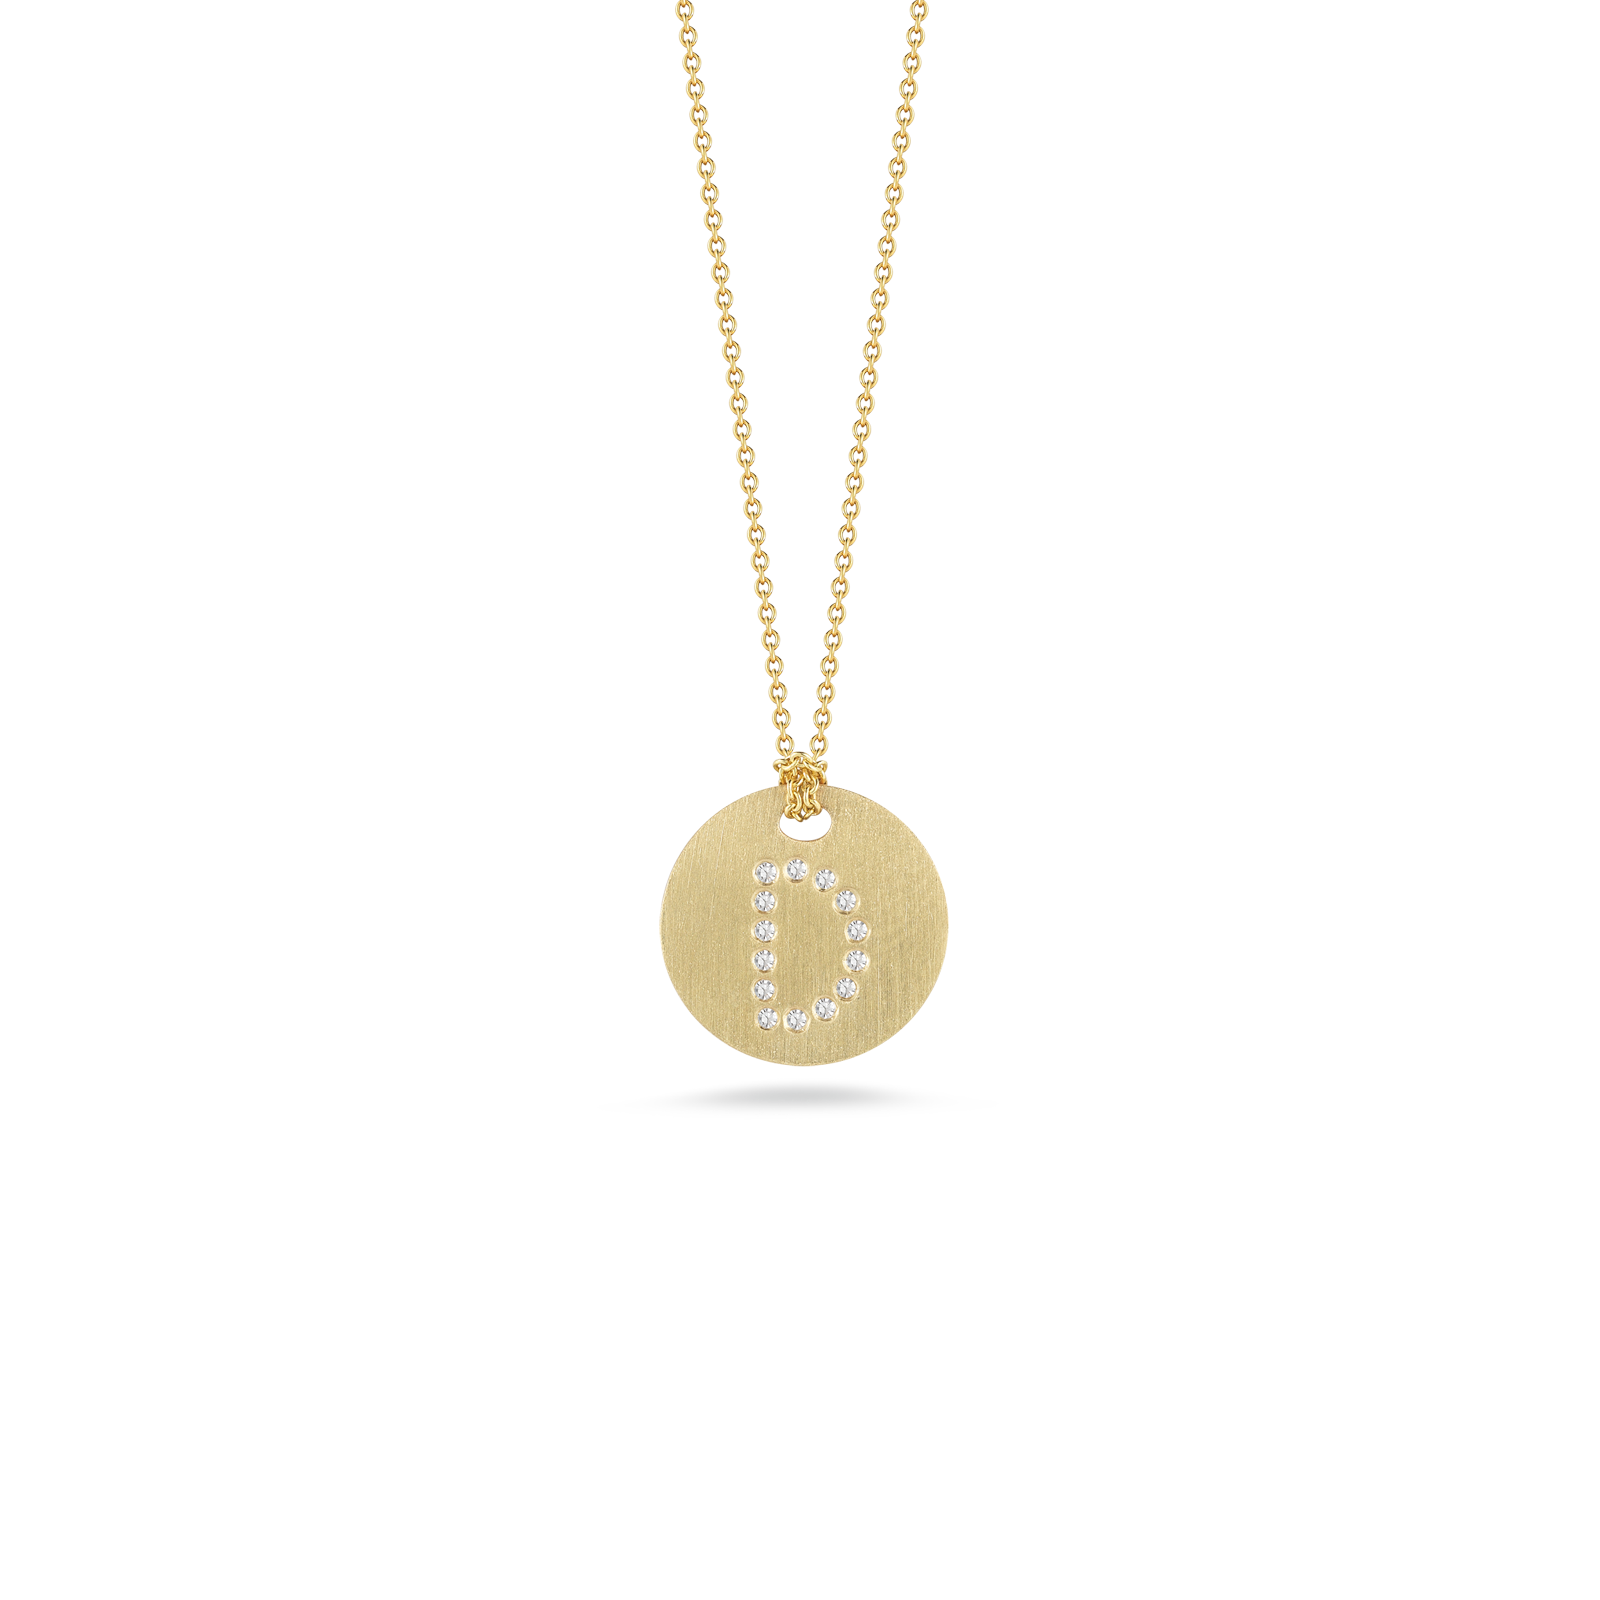 goldfilled tiny simple chains initial product hugerect jewelry delicate necklace letter gold